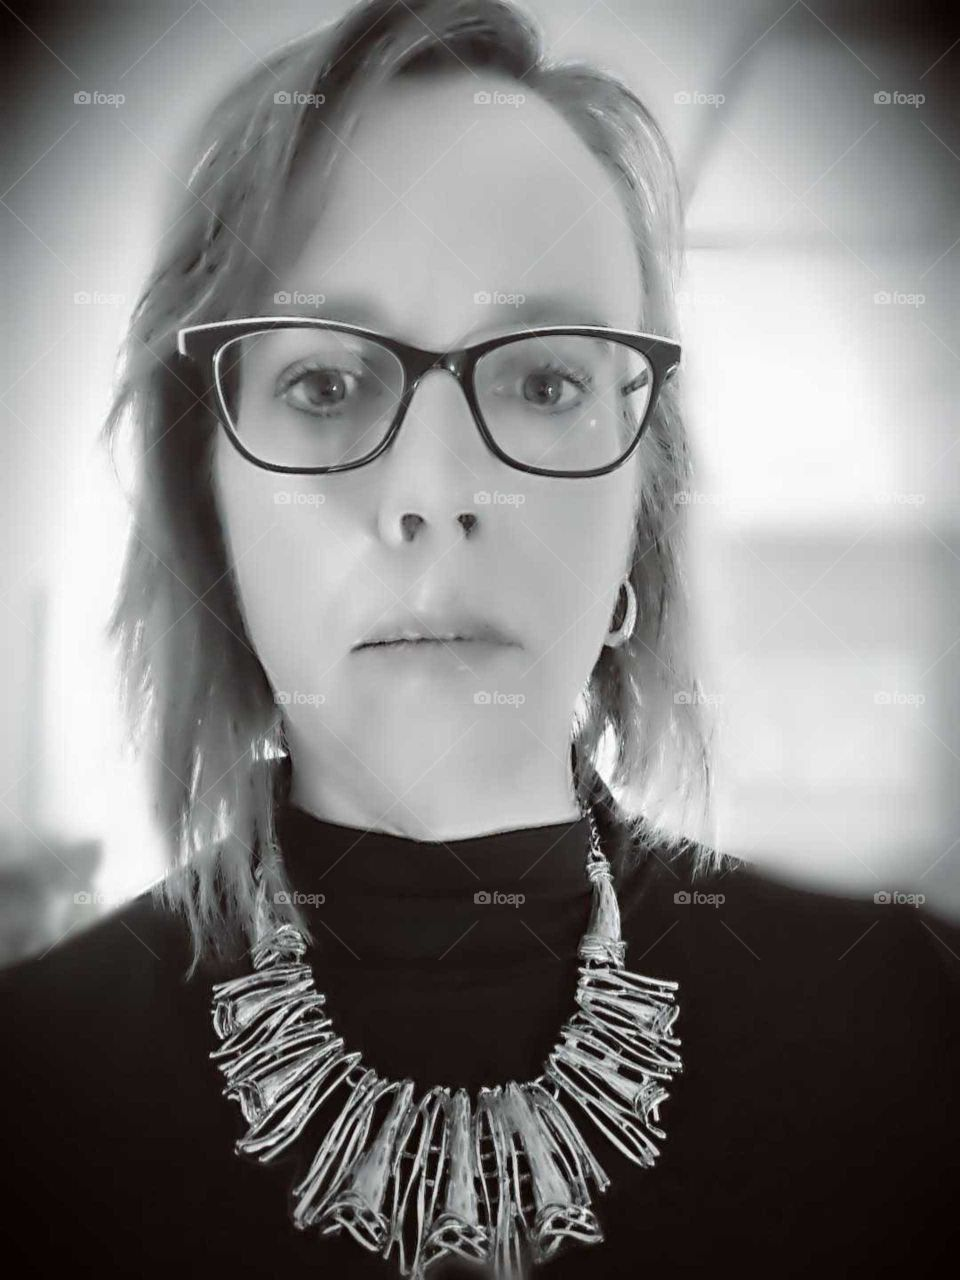 a serious woman wearing eyeglasses and a necklace